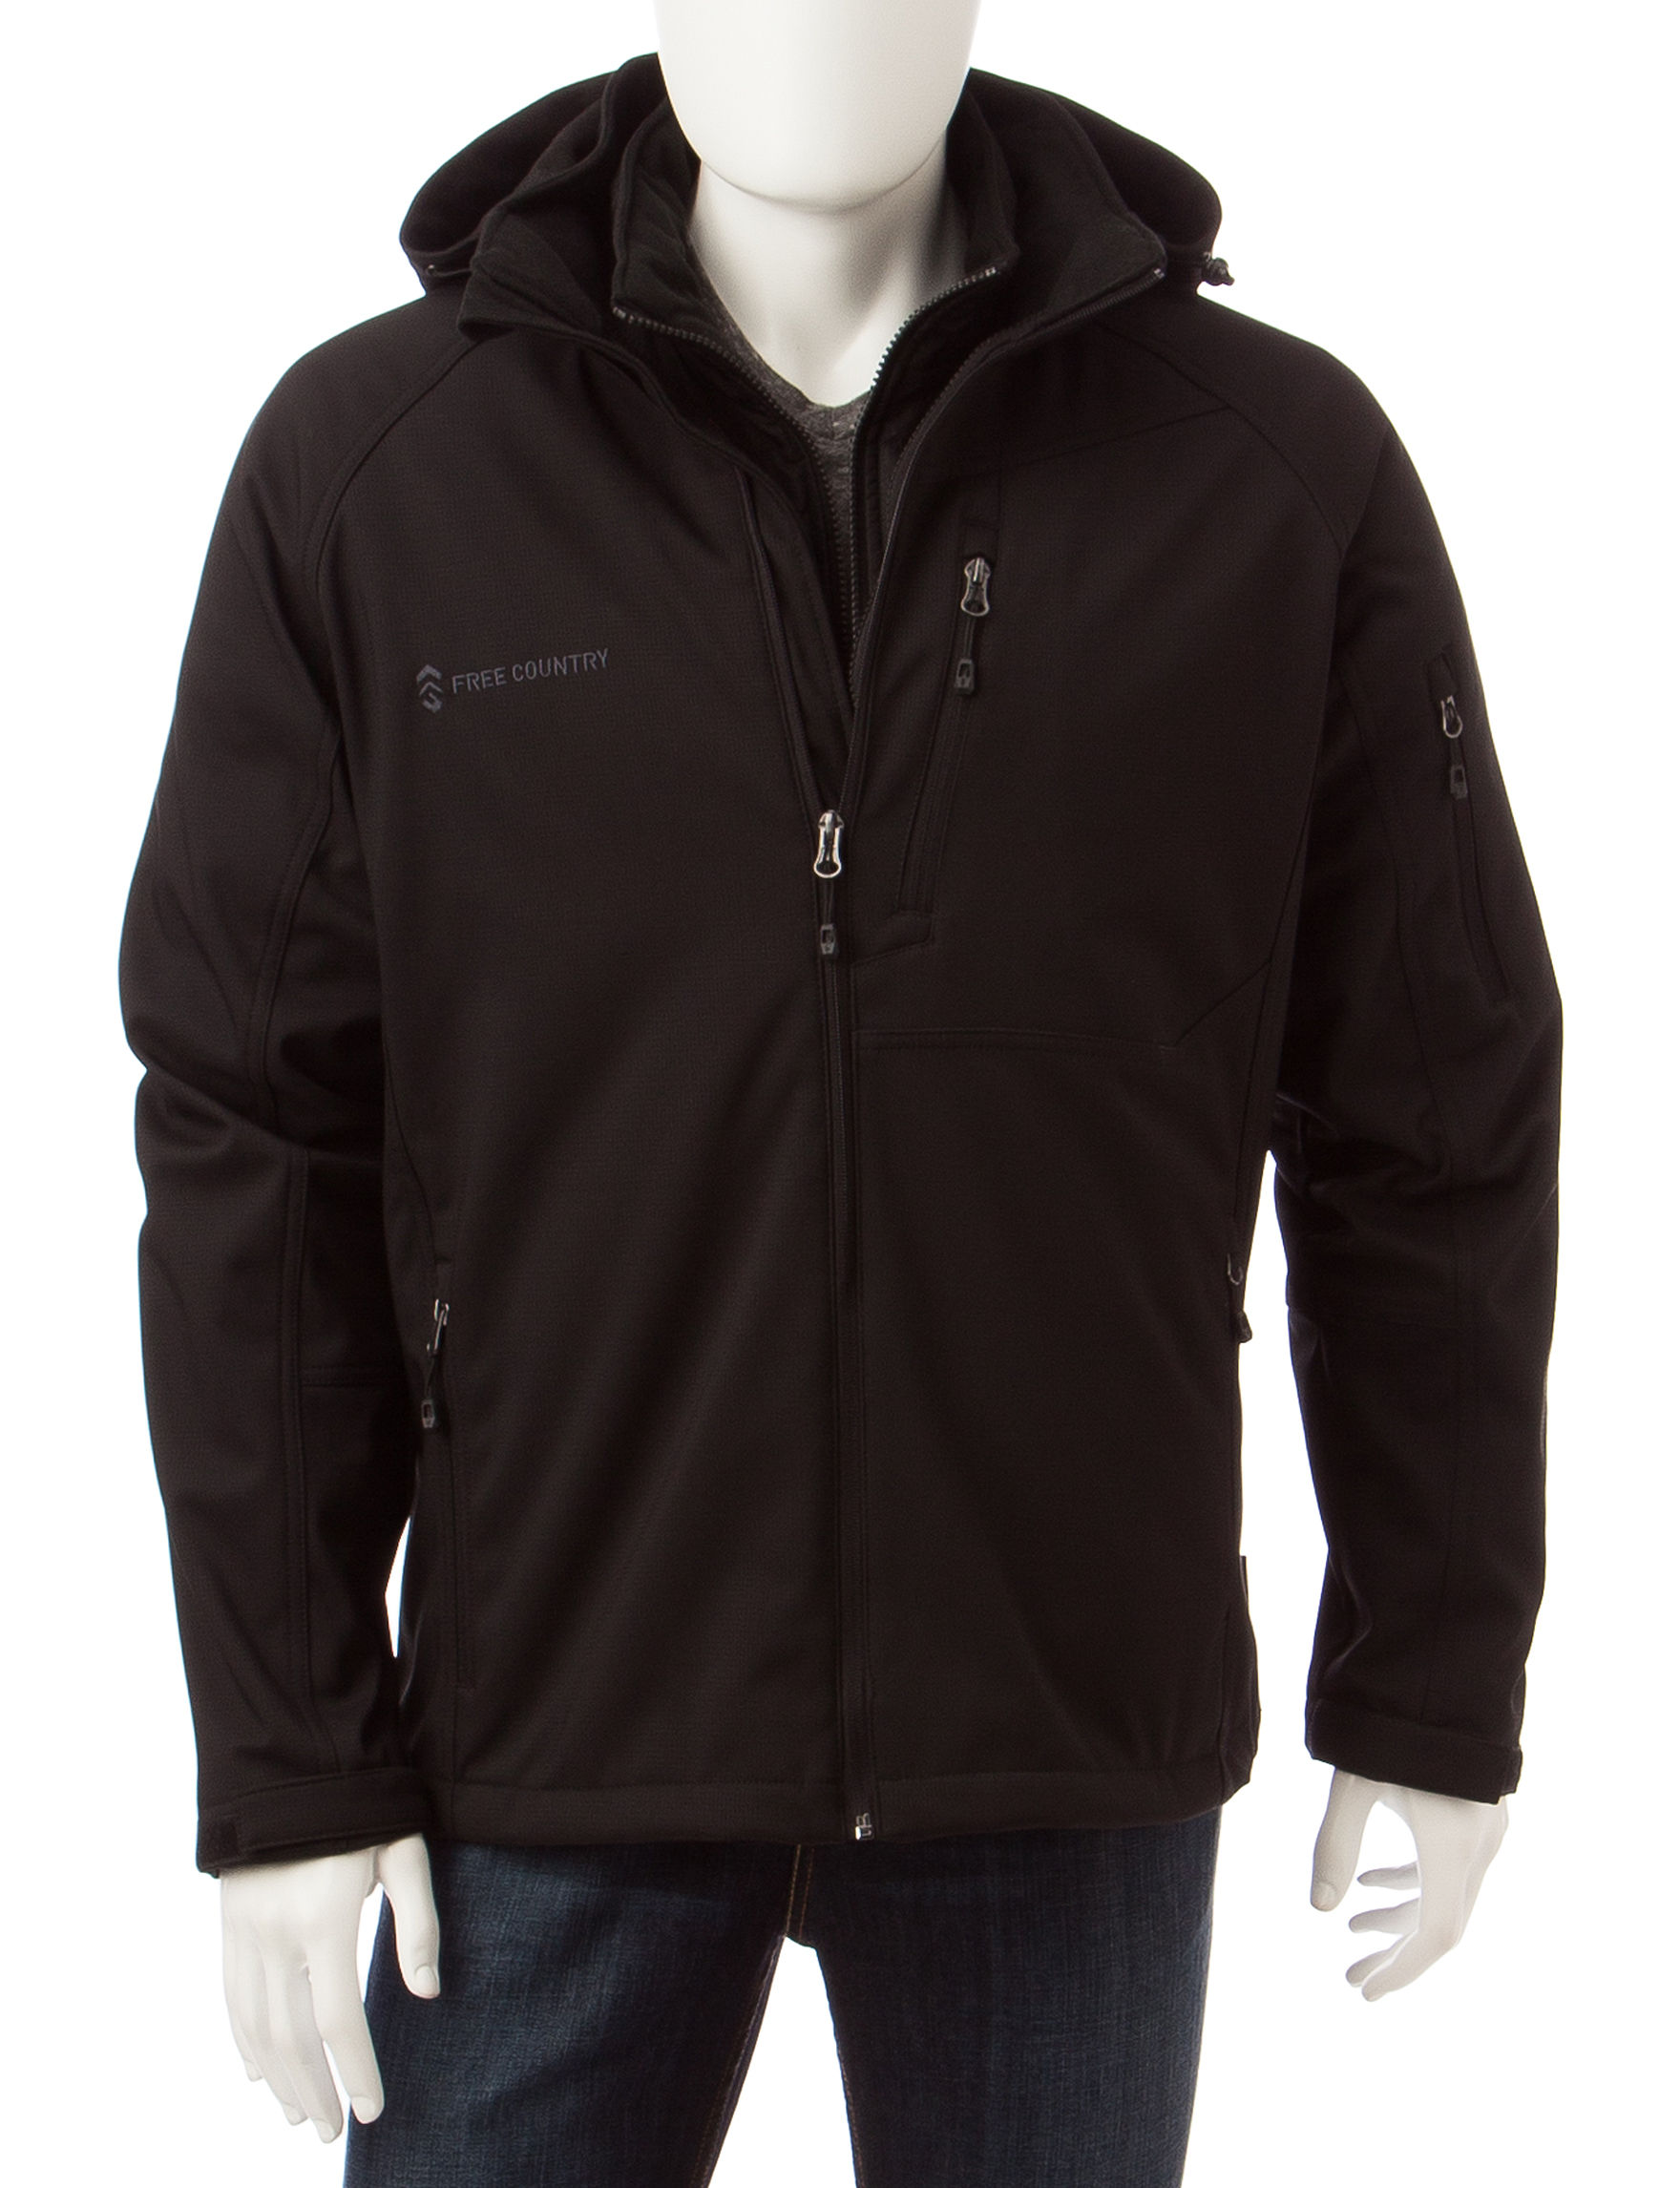 Free Country Jet Black Fleece & Soft Shell Jackets